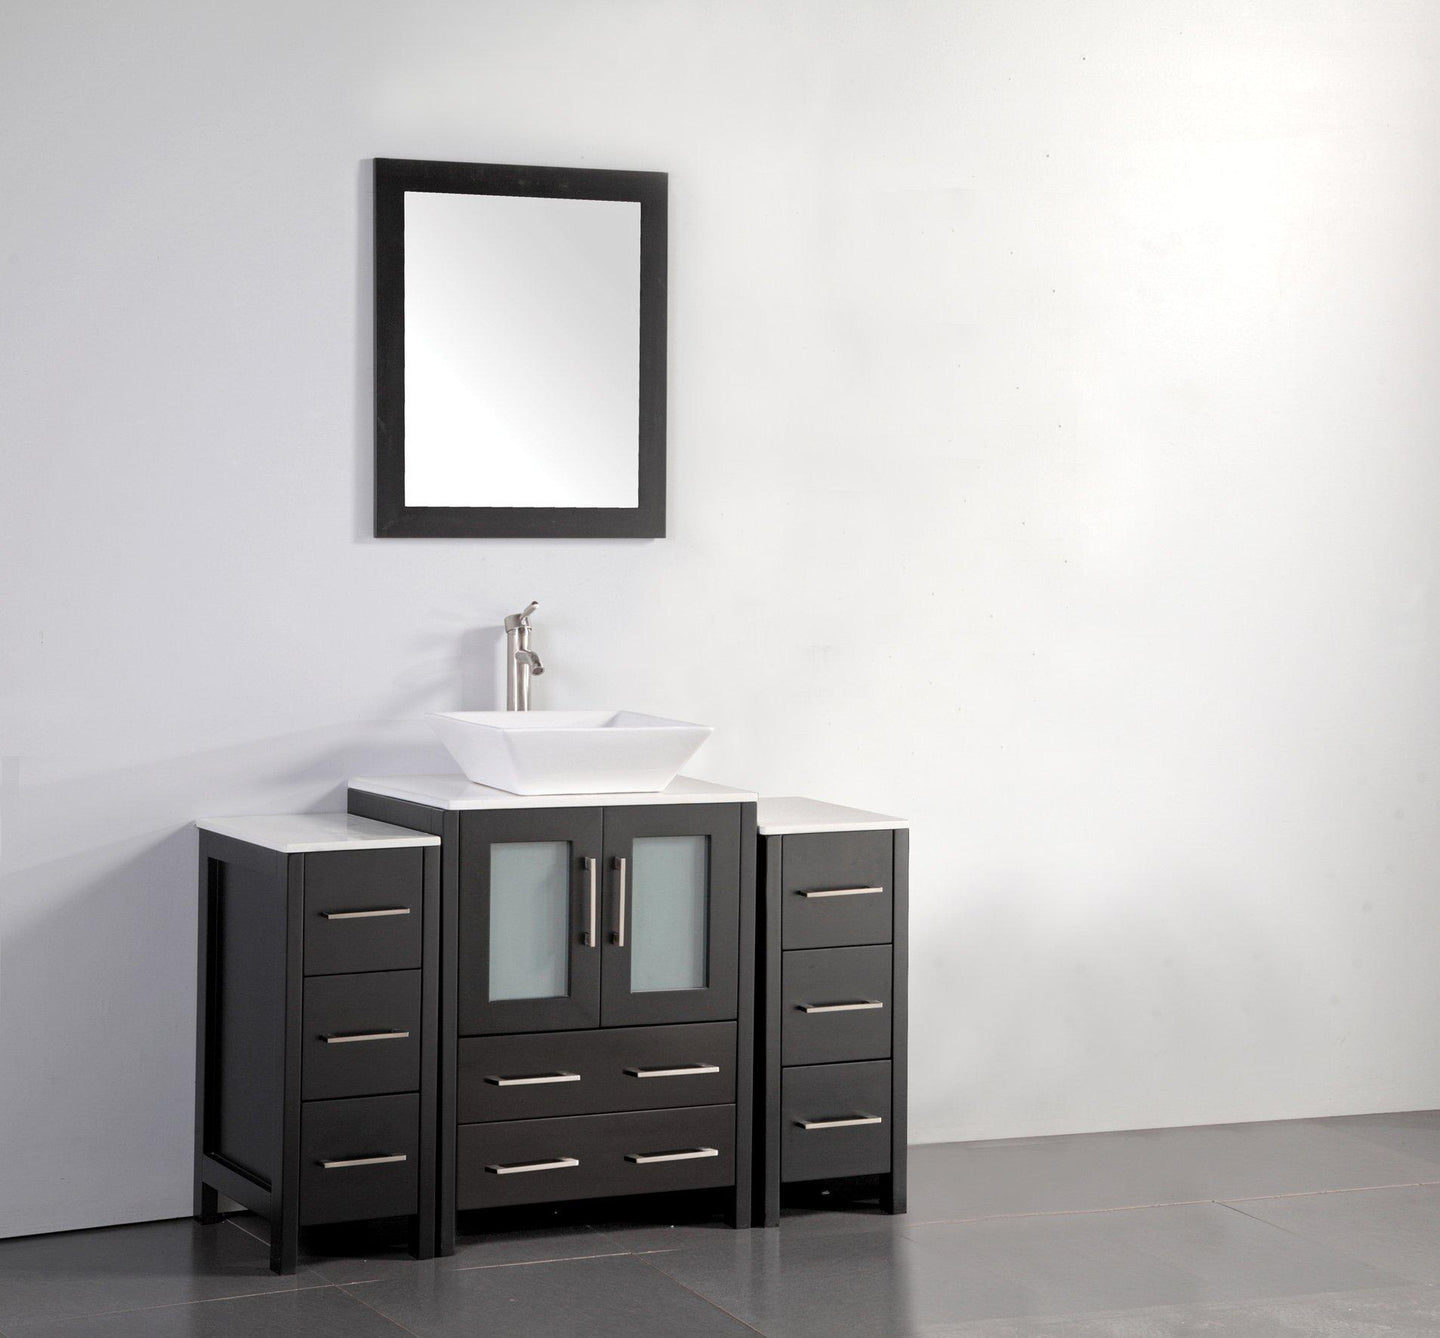 48 in. W x 18.5 in. D x 36 in. H Bathroom Vanity in Espresso with Single Basin Vanity Top in White Ceramic and Mirror